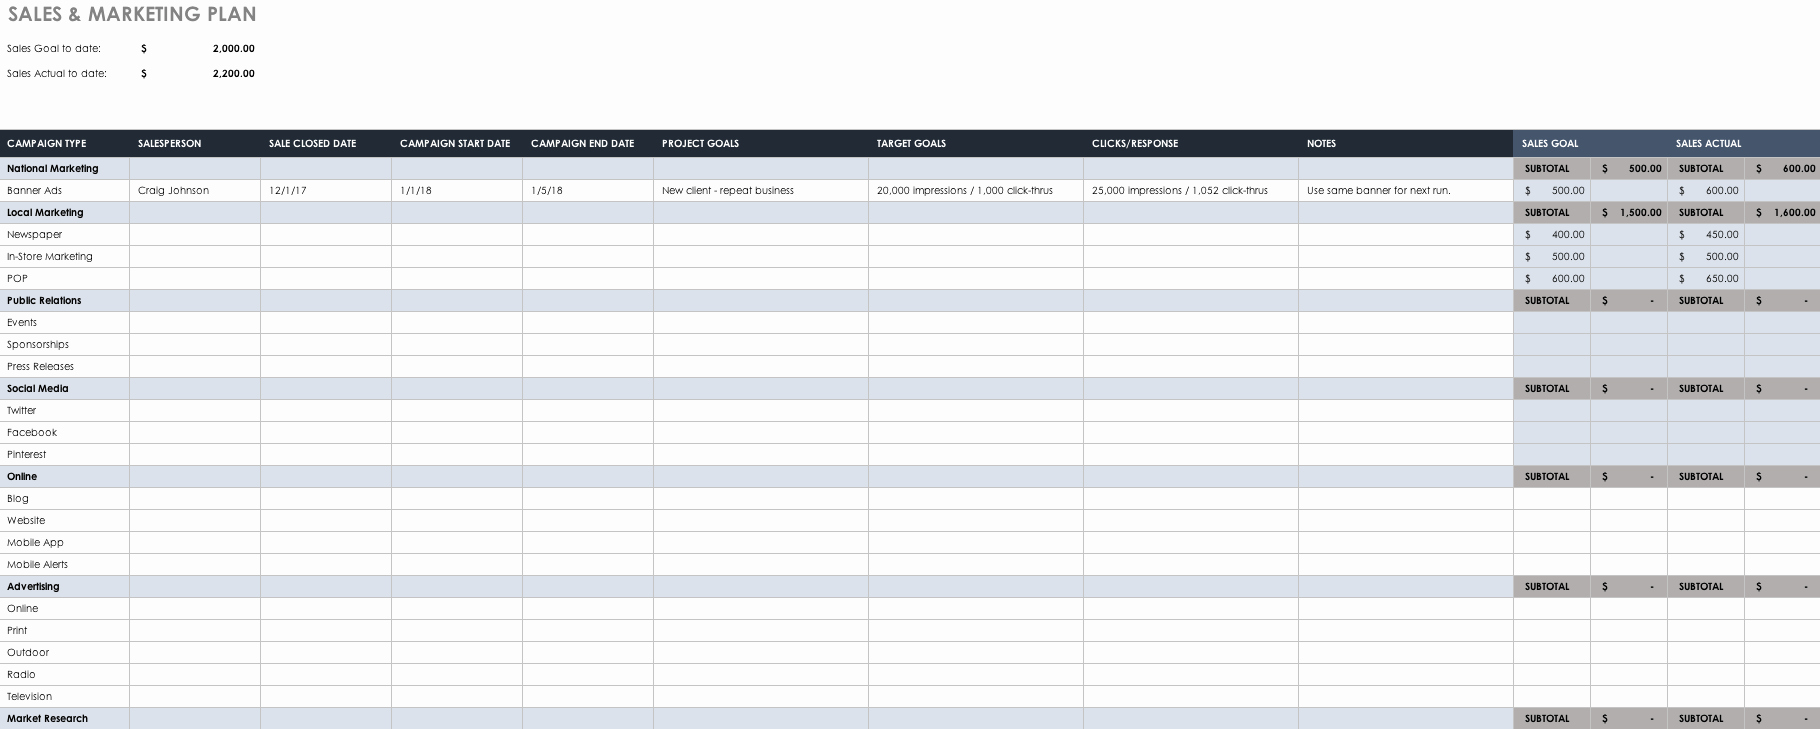 Marketing Action Plan Template Excel Awesome Free Marketing Plan Templates for Excel